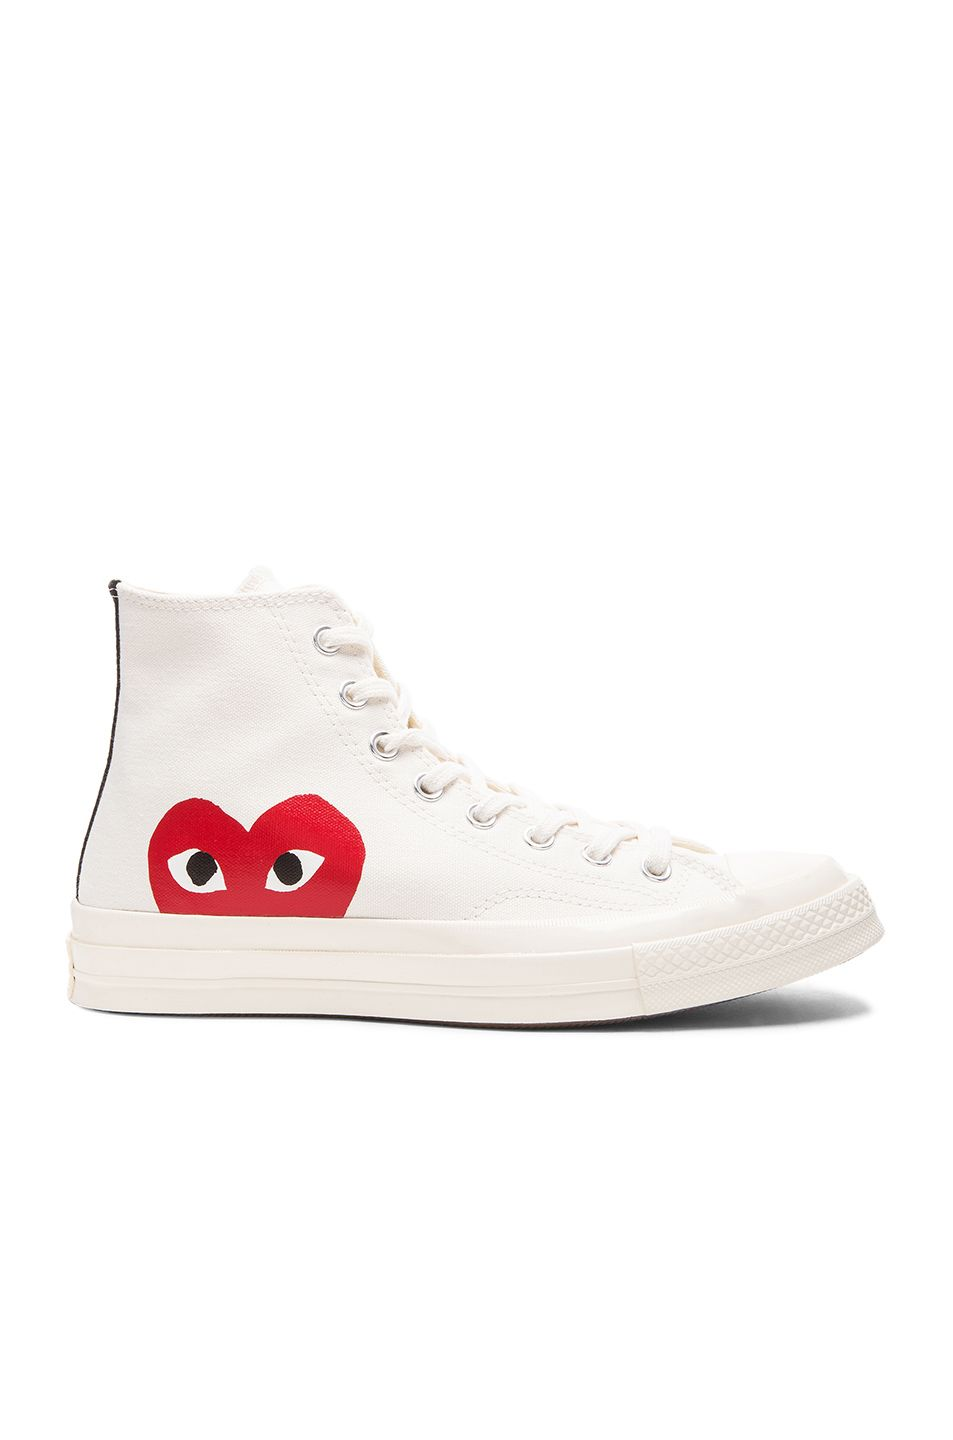 c5f5c302eaed Image 1 of Comme Des Garcons PLAY Large Emblem High Top Canvas Sneakers in  White